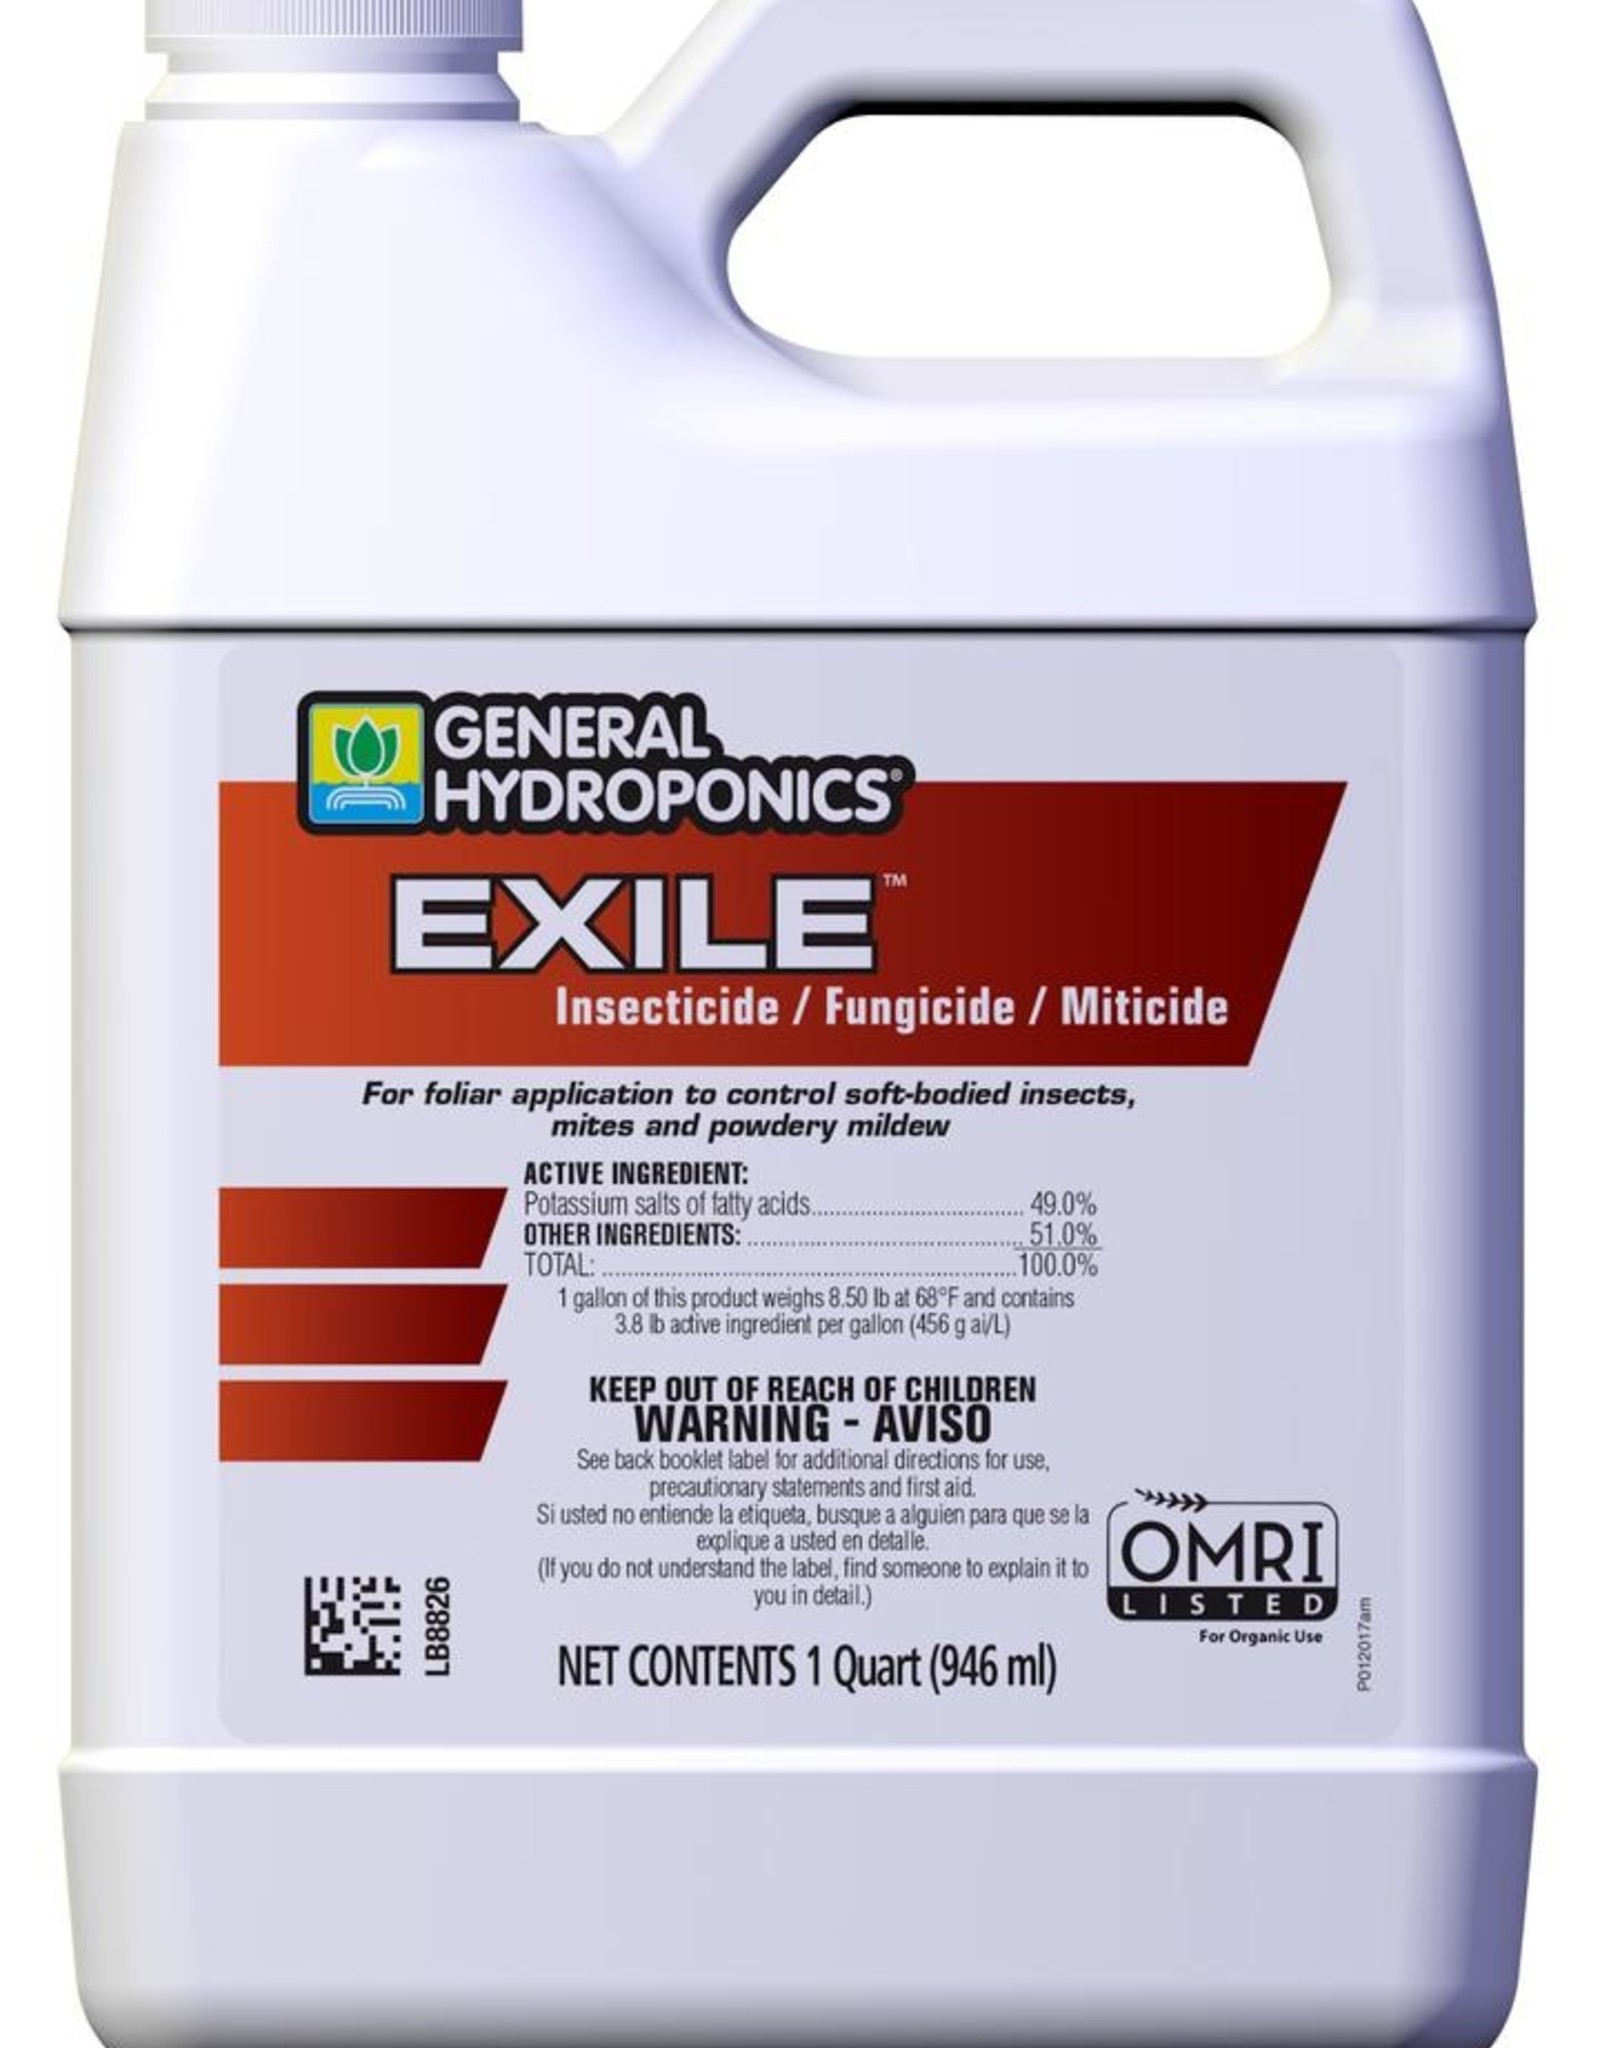 GENERAL HYDROPONICS General Hydroponics® Exile™ Insecticide/Fungicide/Miticide is OMRI listed for use in organic gardening and an EPA-registered fungicide. That means one product gives you control of listed pests and diseases (e.g. soft-bodied pests and powdery mildew) in ve